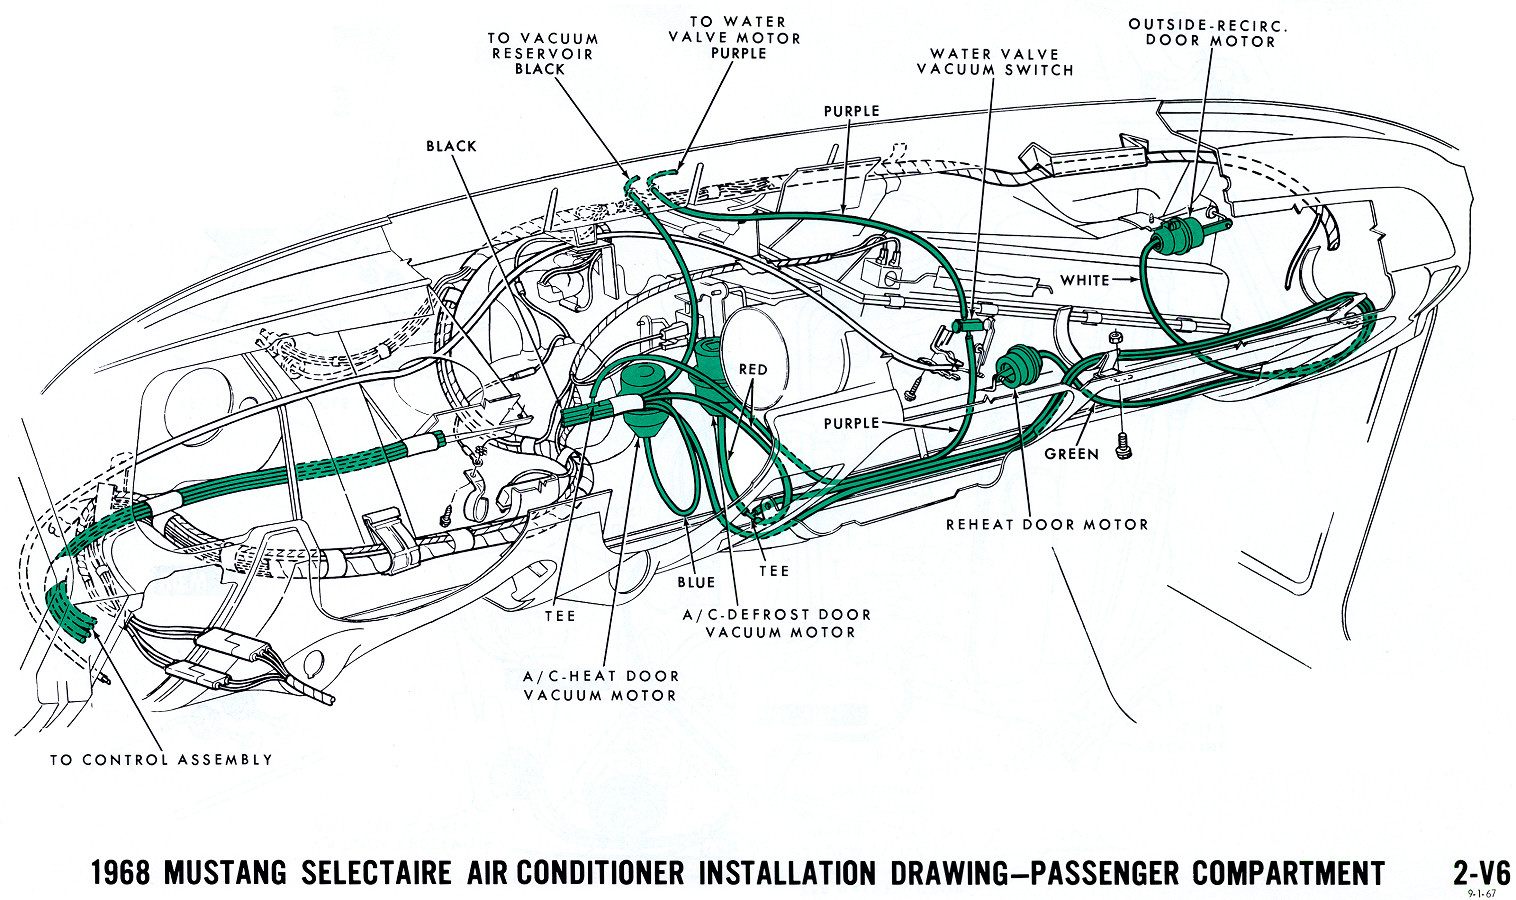 Mustang Wiring Diagram on 1970 mustang dash lights, 1970 mustang parts, 1970 mustang oil filter, 1970 mustang mach 2, 1970 mustang colors, 1970 mustang rear window trim, 1970 mustang hatchback, 1970 mustang ignition switch, ford mustang vacuum diagram, 1970 mustang sportsroof, 1970 mustang fuel pump, 1970 mustang notchback, 1969 mustang ignition switch diagram, 66 mustang electrical diagram, 1970 mustang wire harness, 2003 mustang fuse diagram, 1970 mustang black, 1970 mustang drive shaft, 70 ford mustang electrical diagram, 1970 mustang ford,